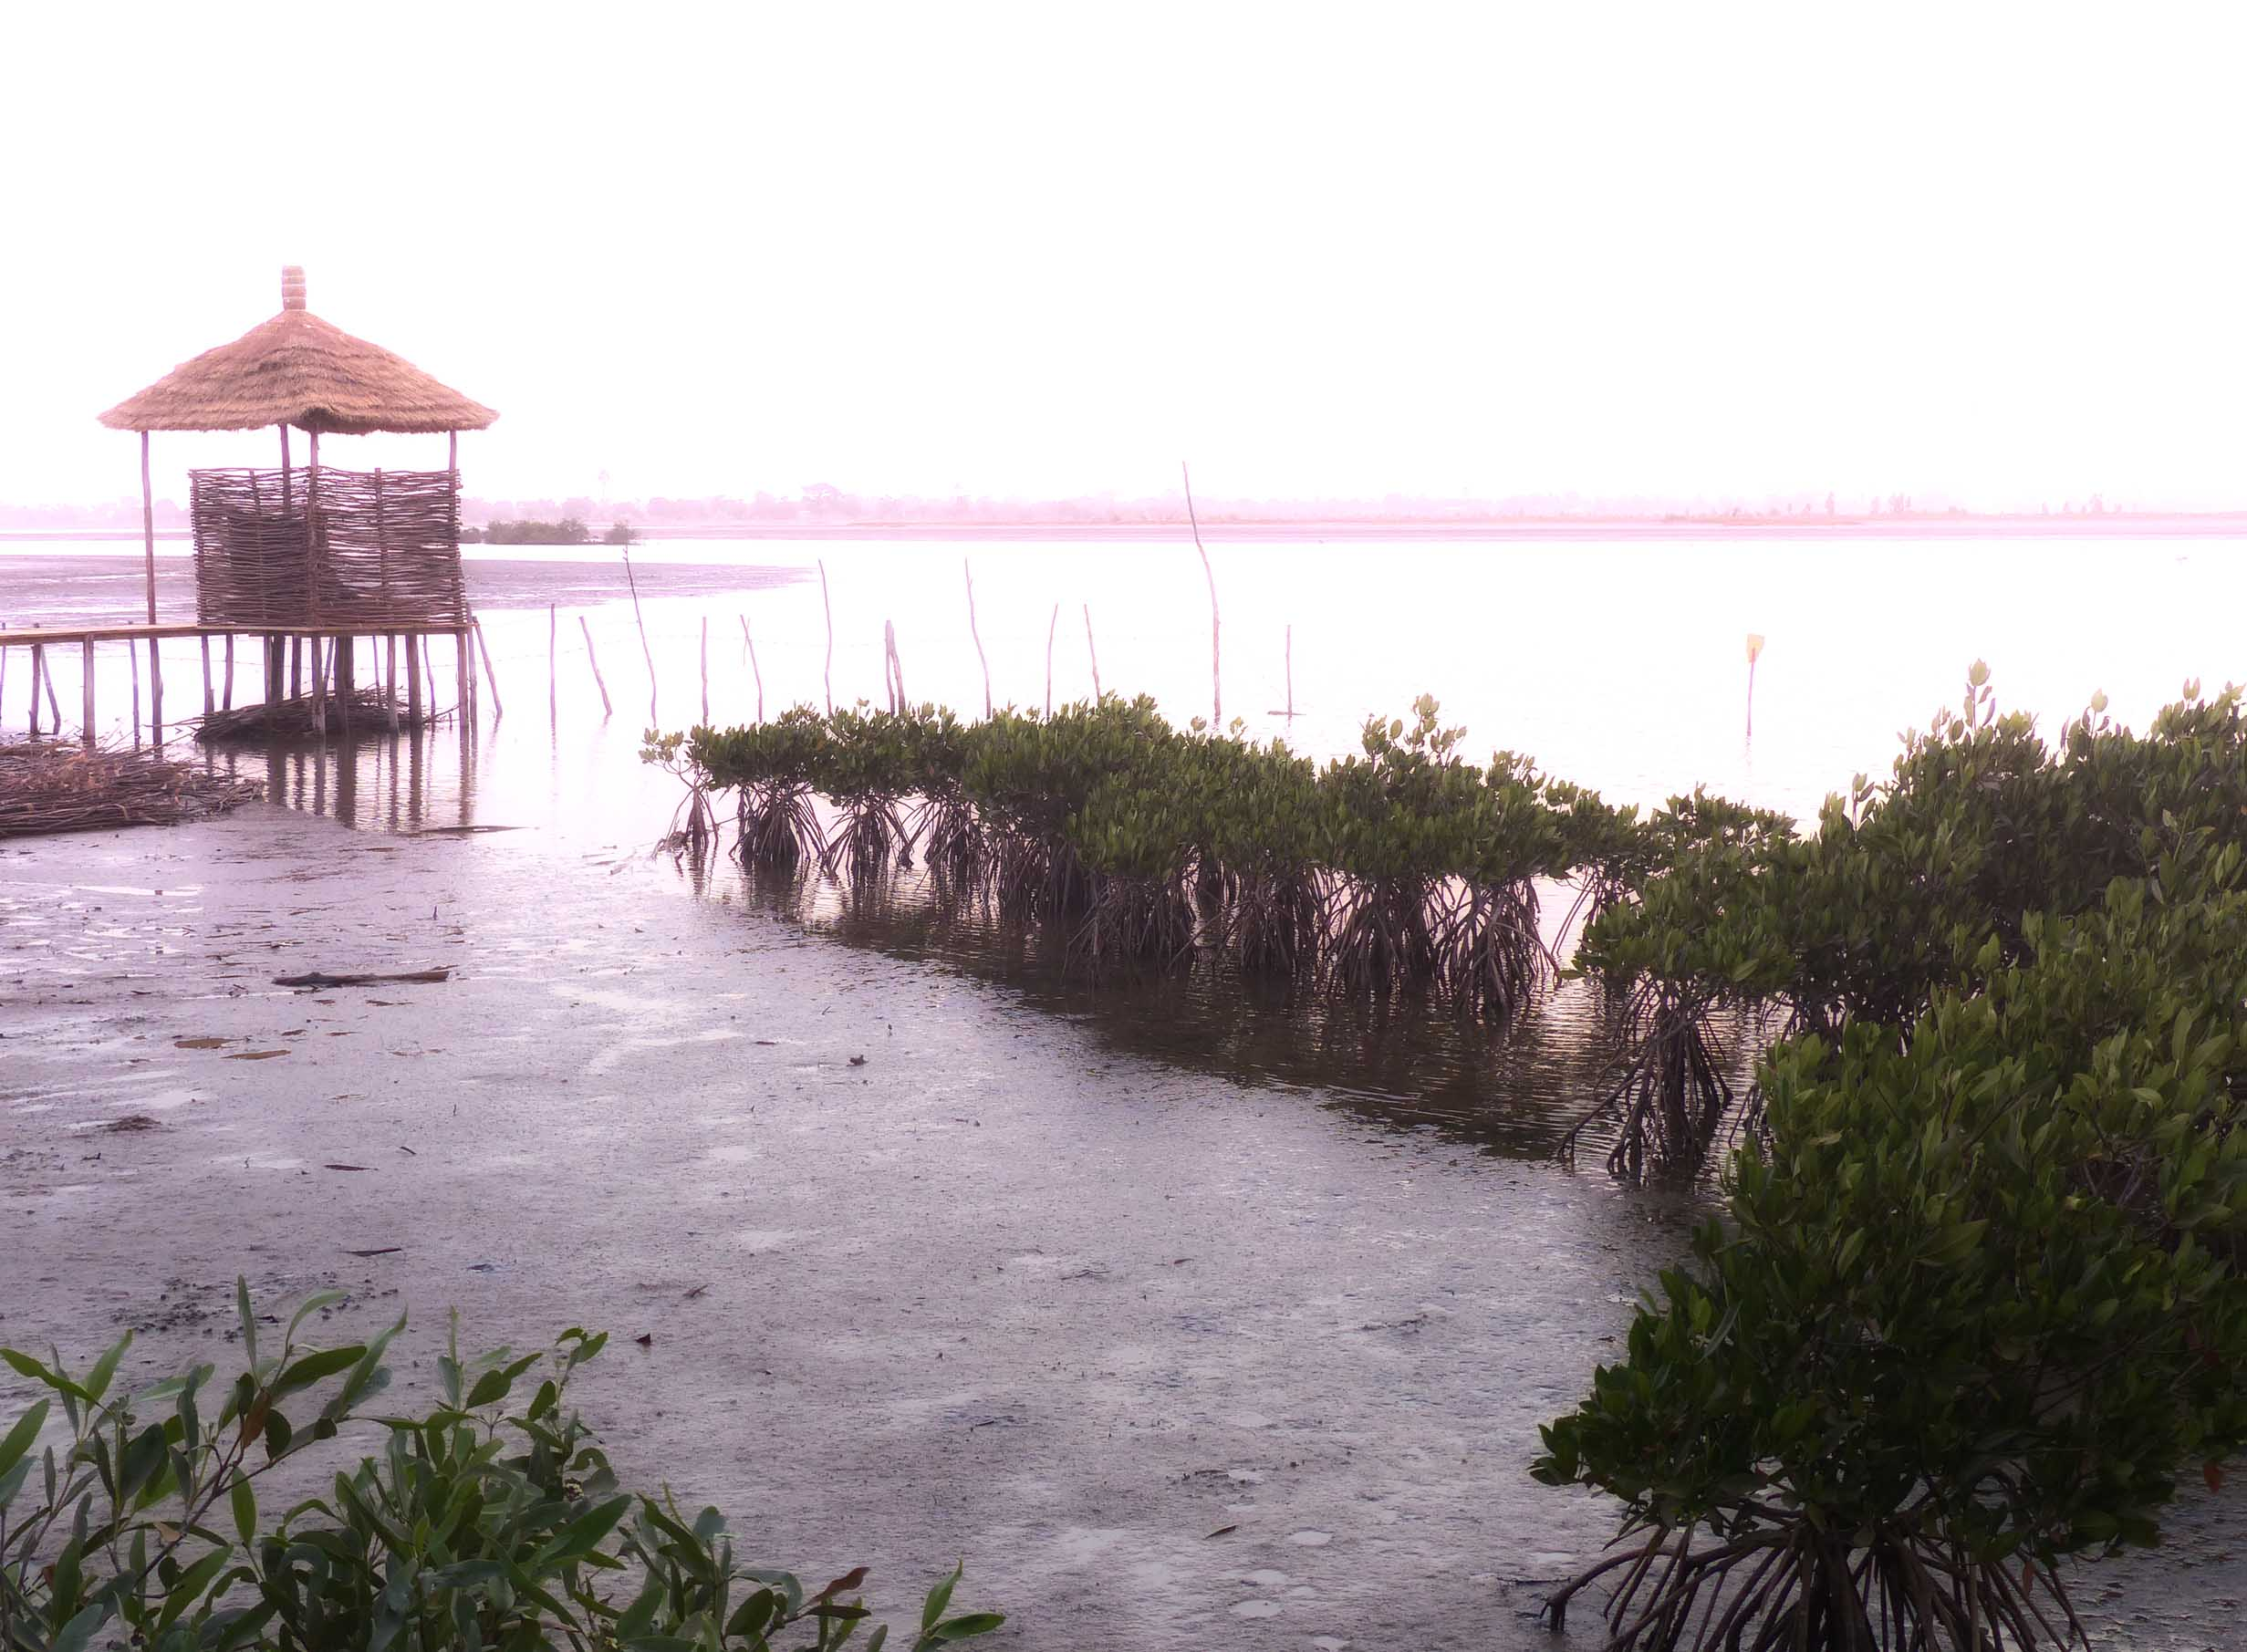 Mangroves and lagoon in pink light